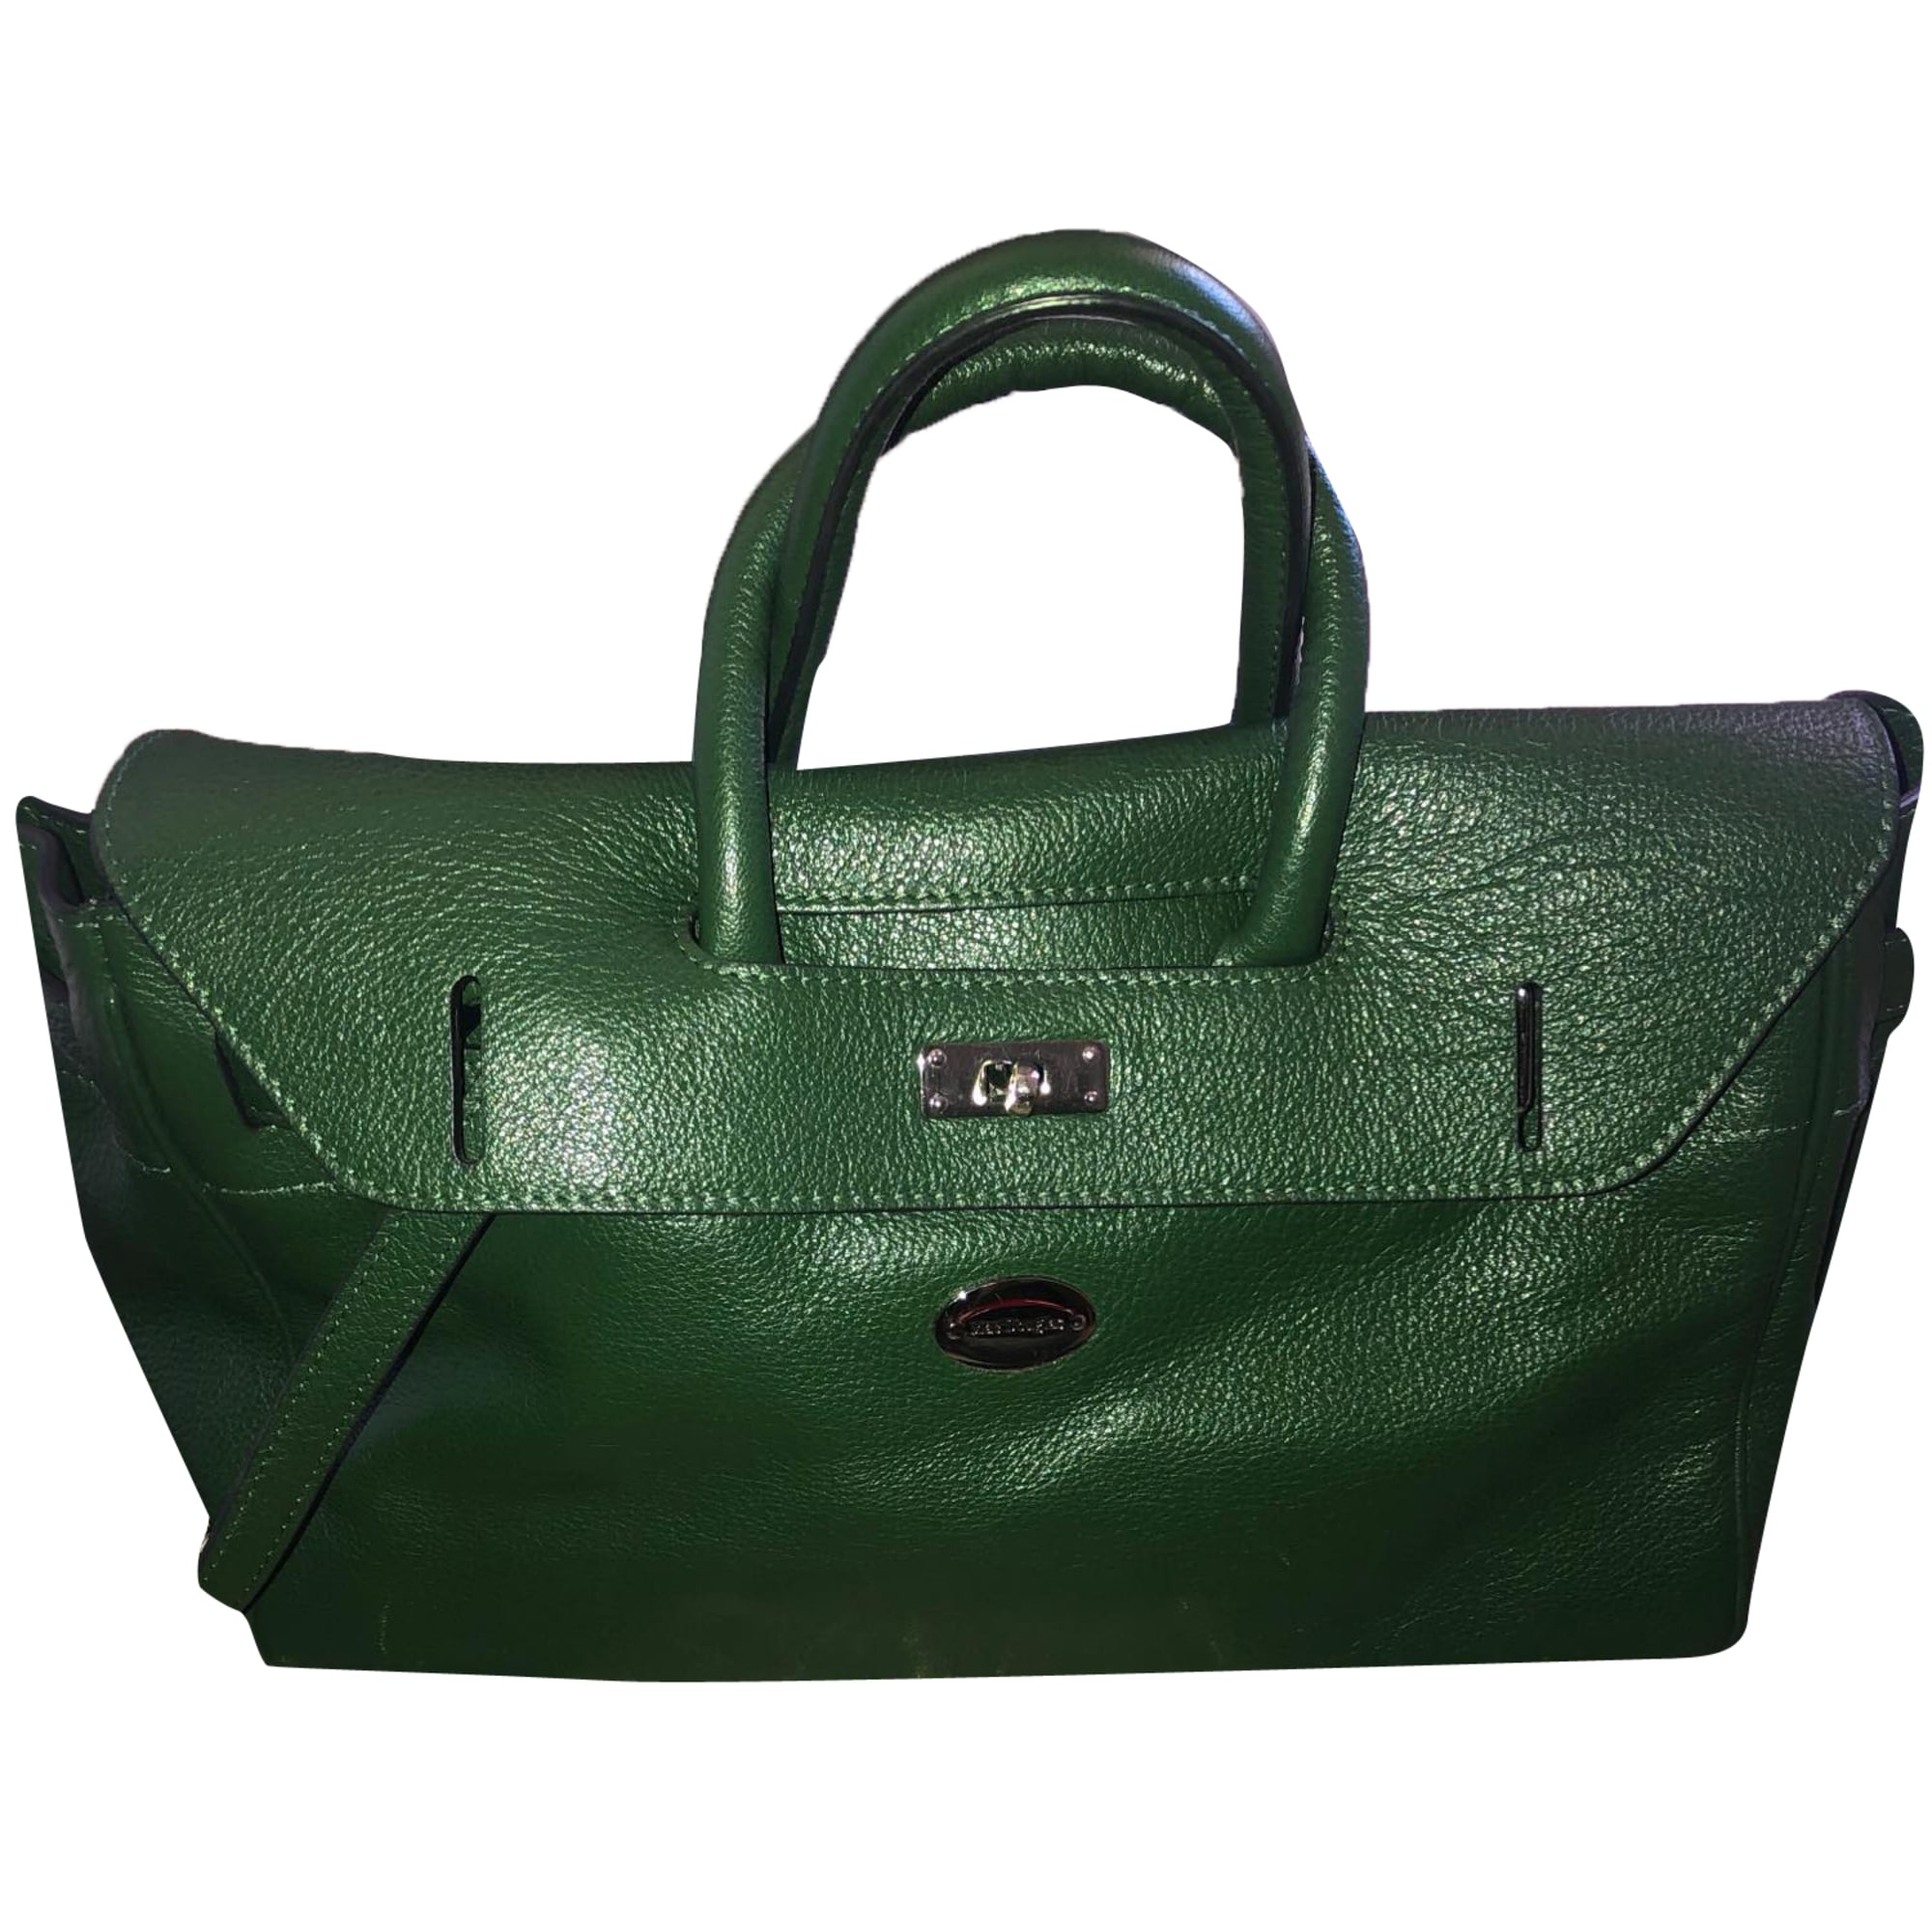 Leather Handbag MAC DOUGLAS Green